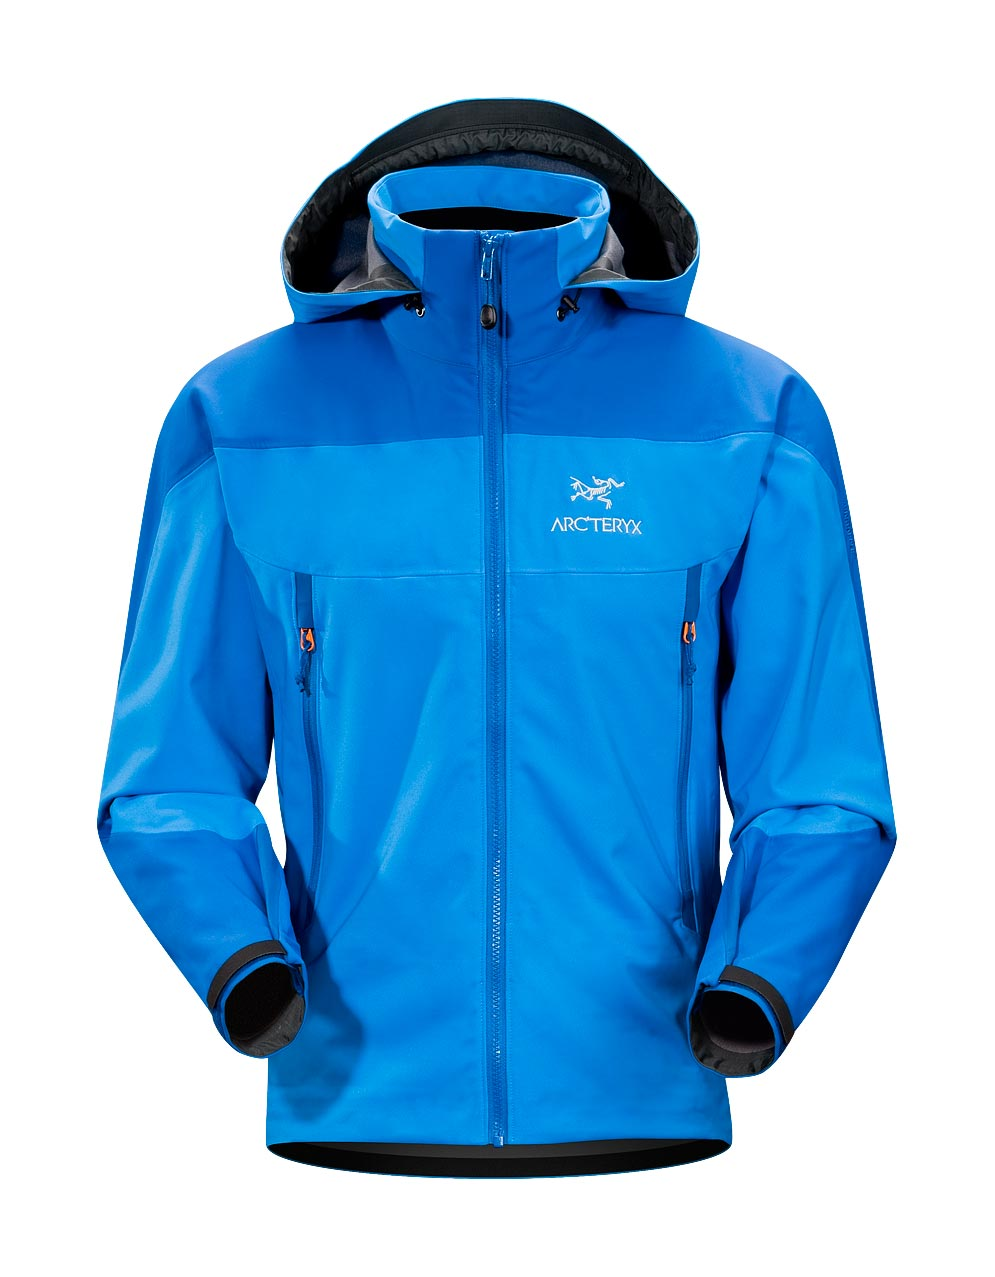 507aceabcfc Cheap Arc'teryx Men's Shell Jackets Outlet Shop